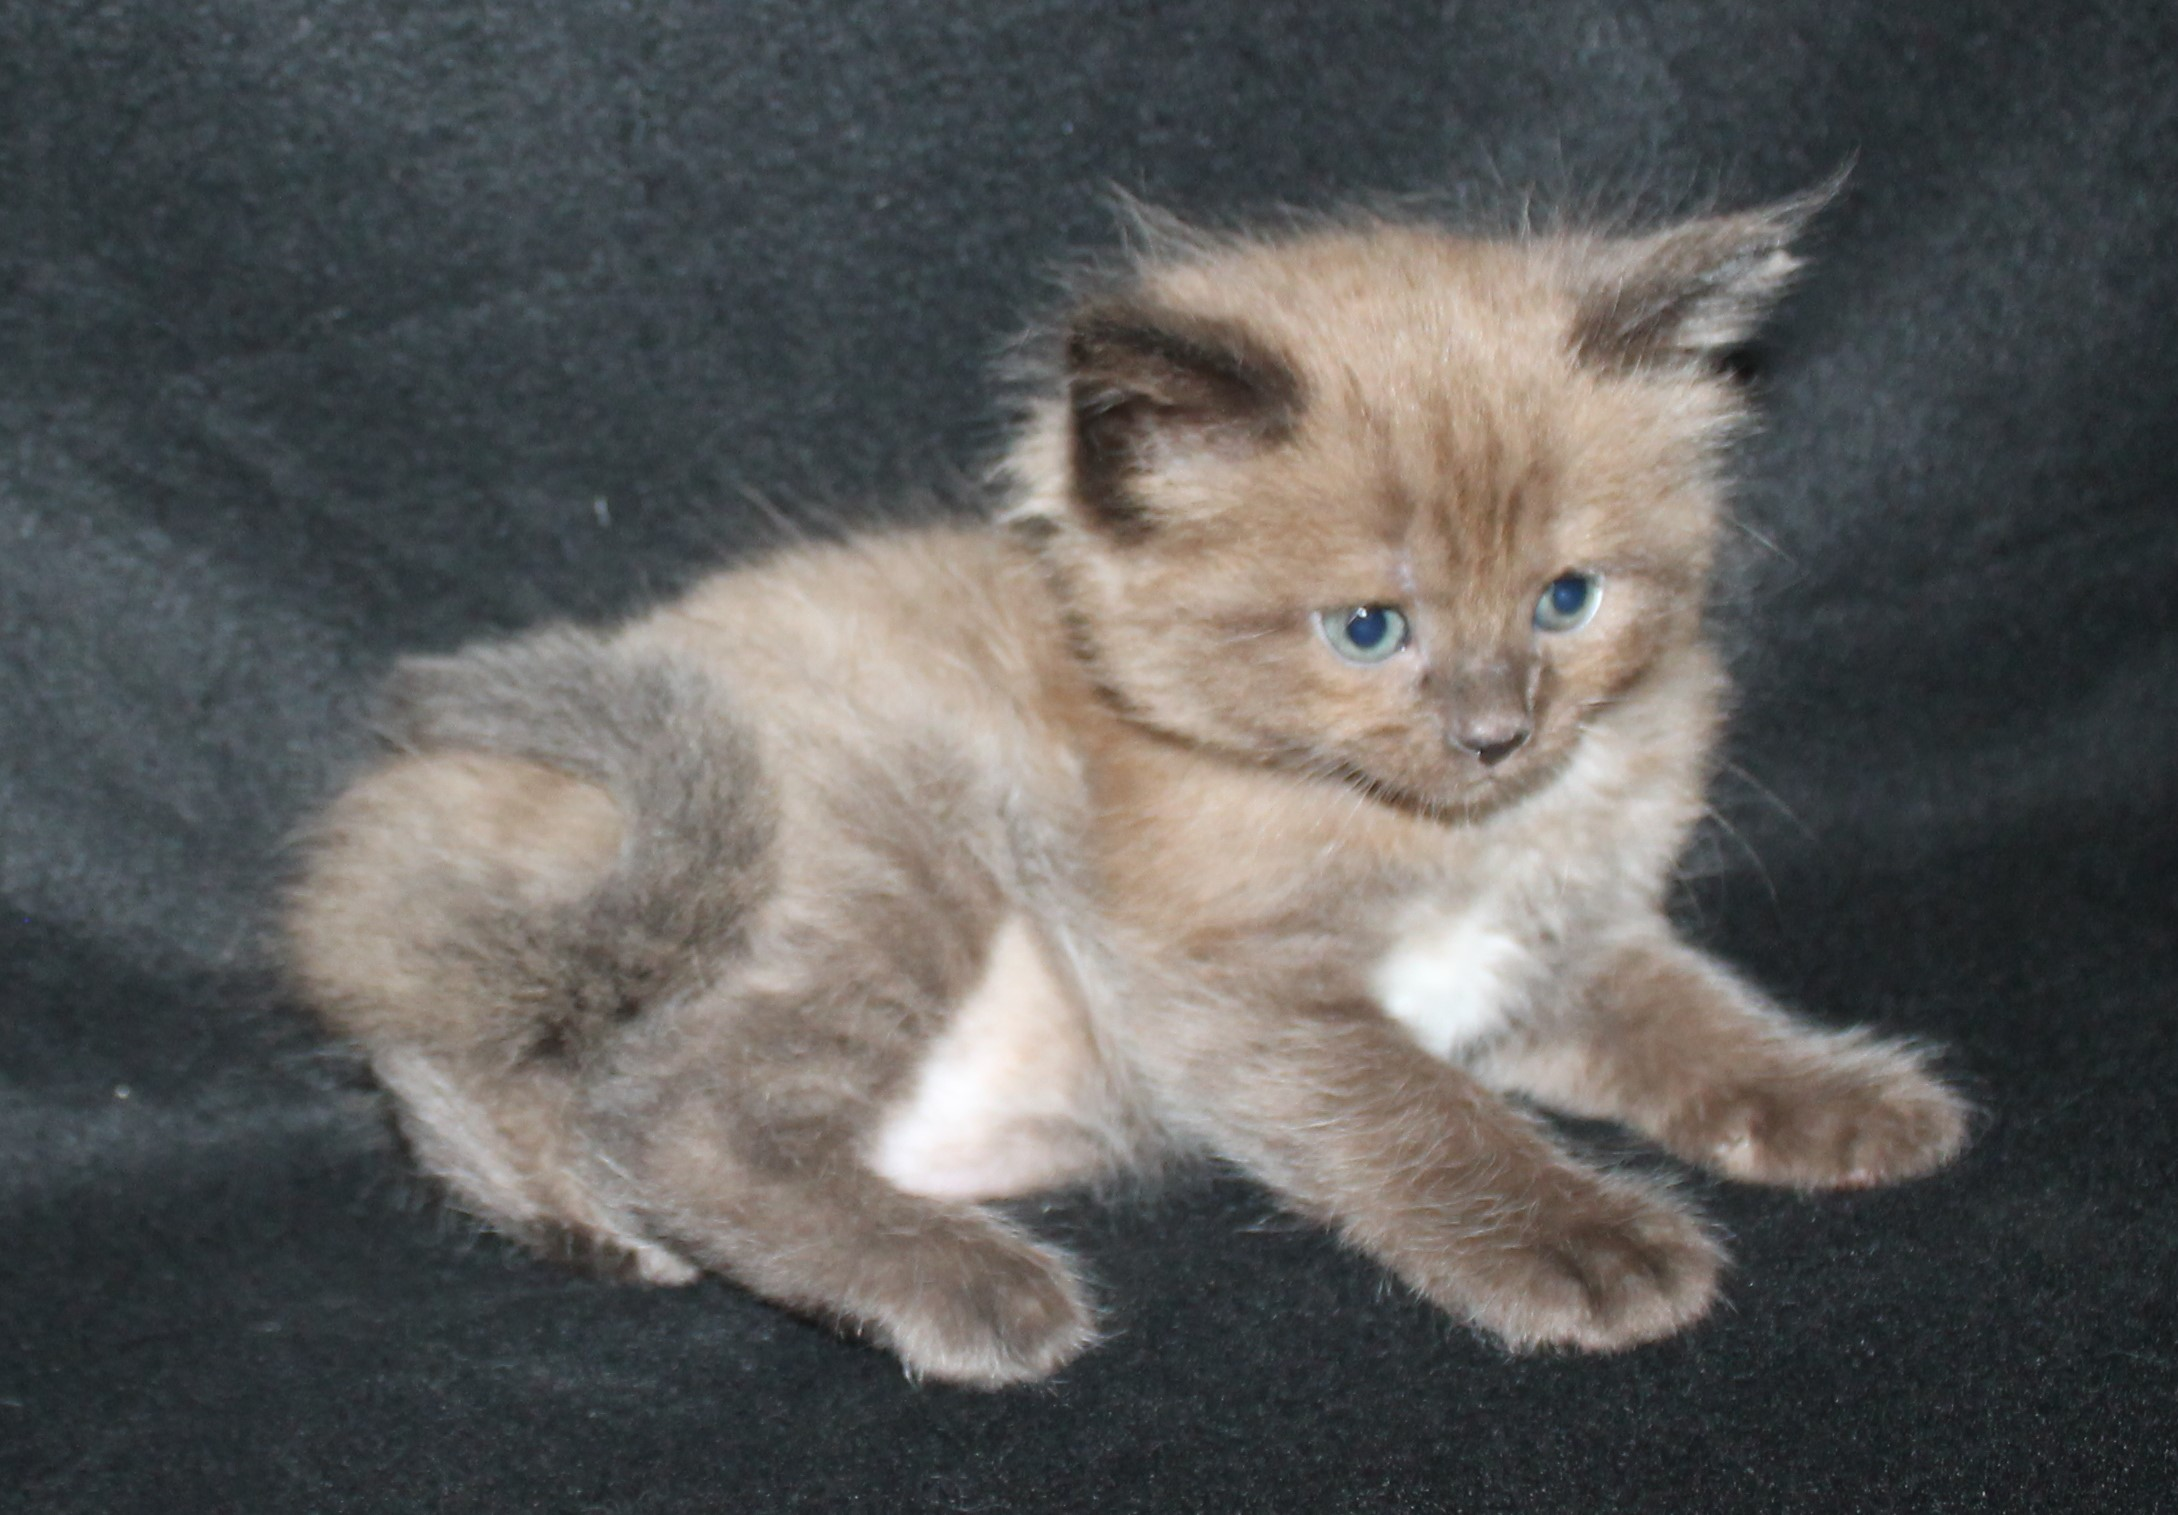 Ragdoll kittens For Sale, Hartley, Lithgow NSW